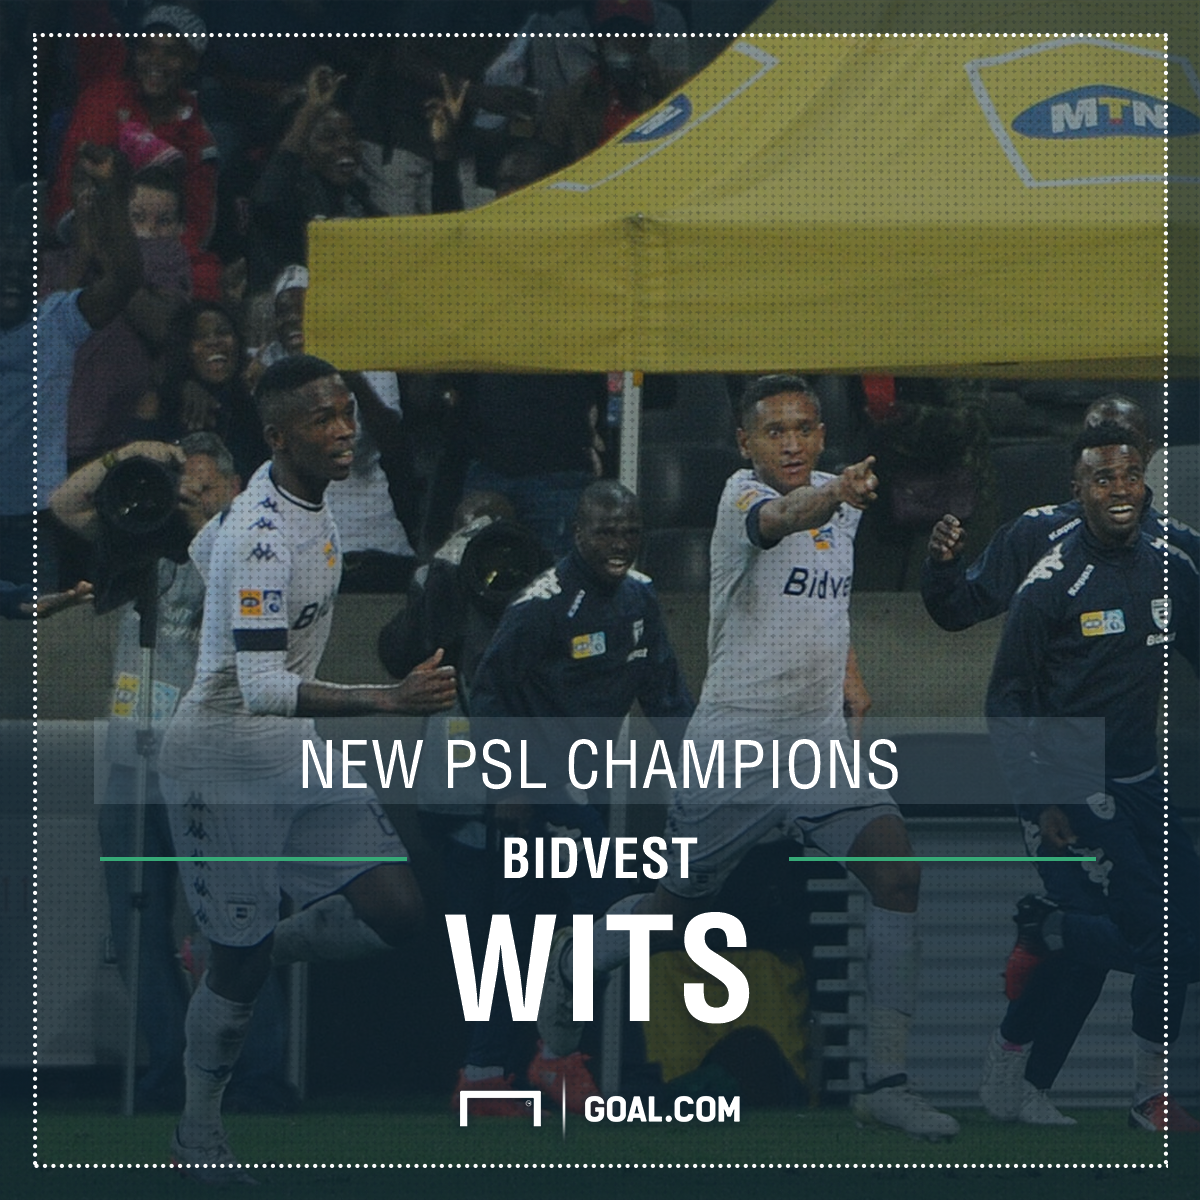 Bidvest Wits win PSL title - poster